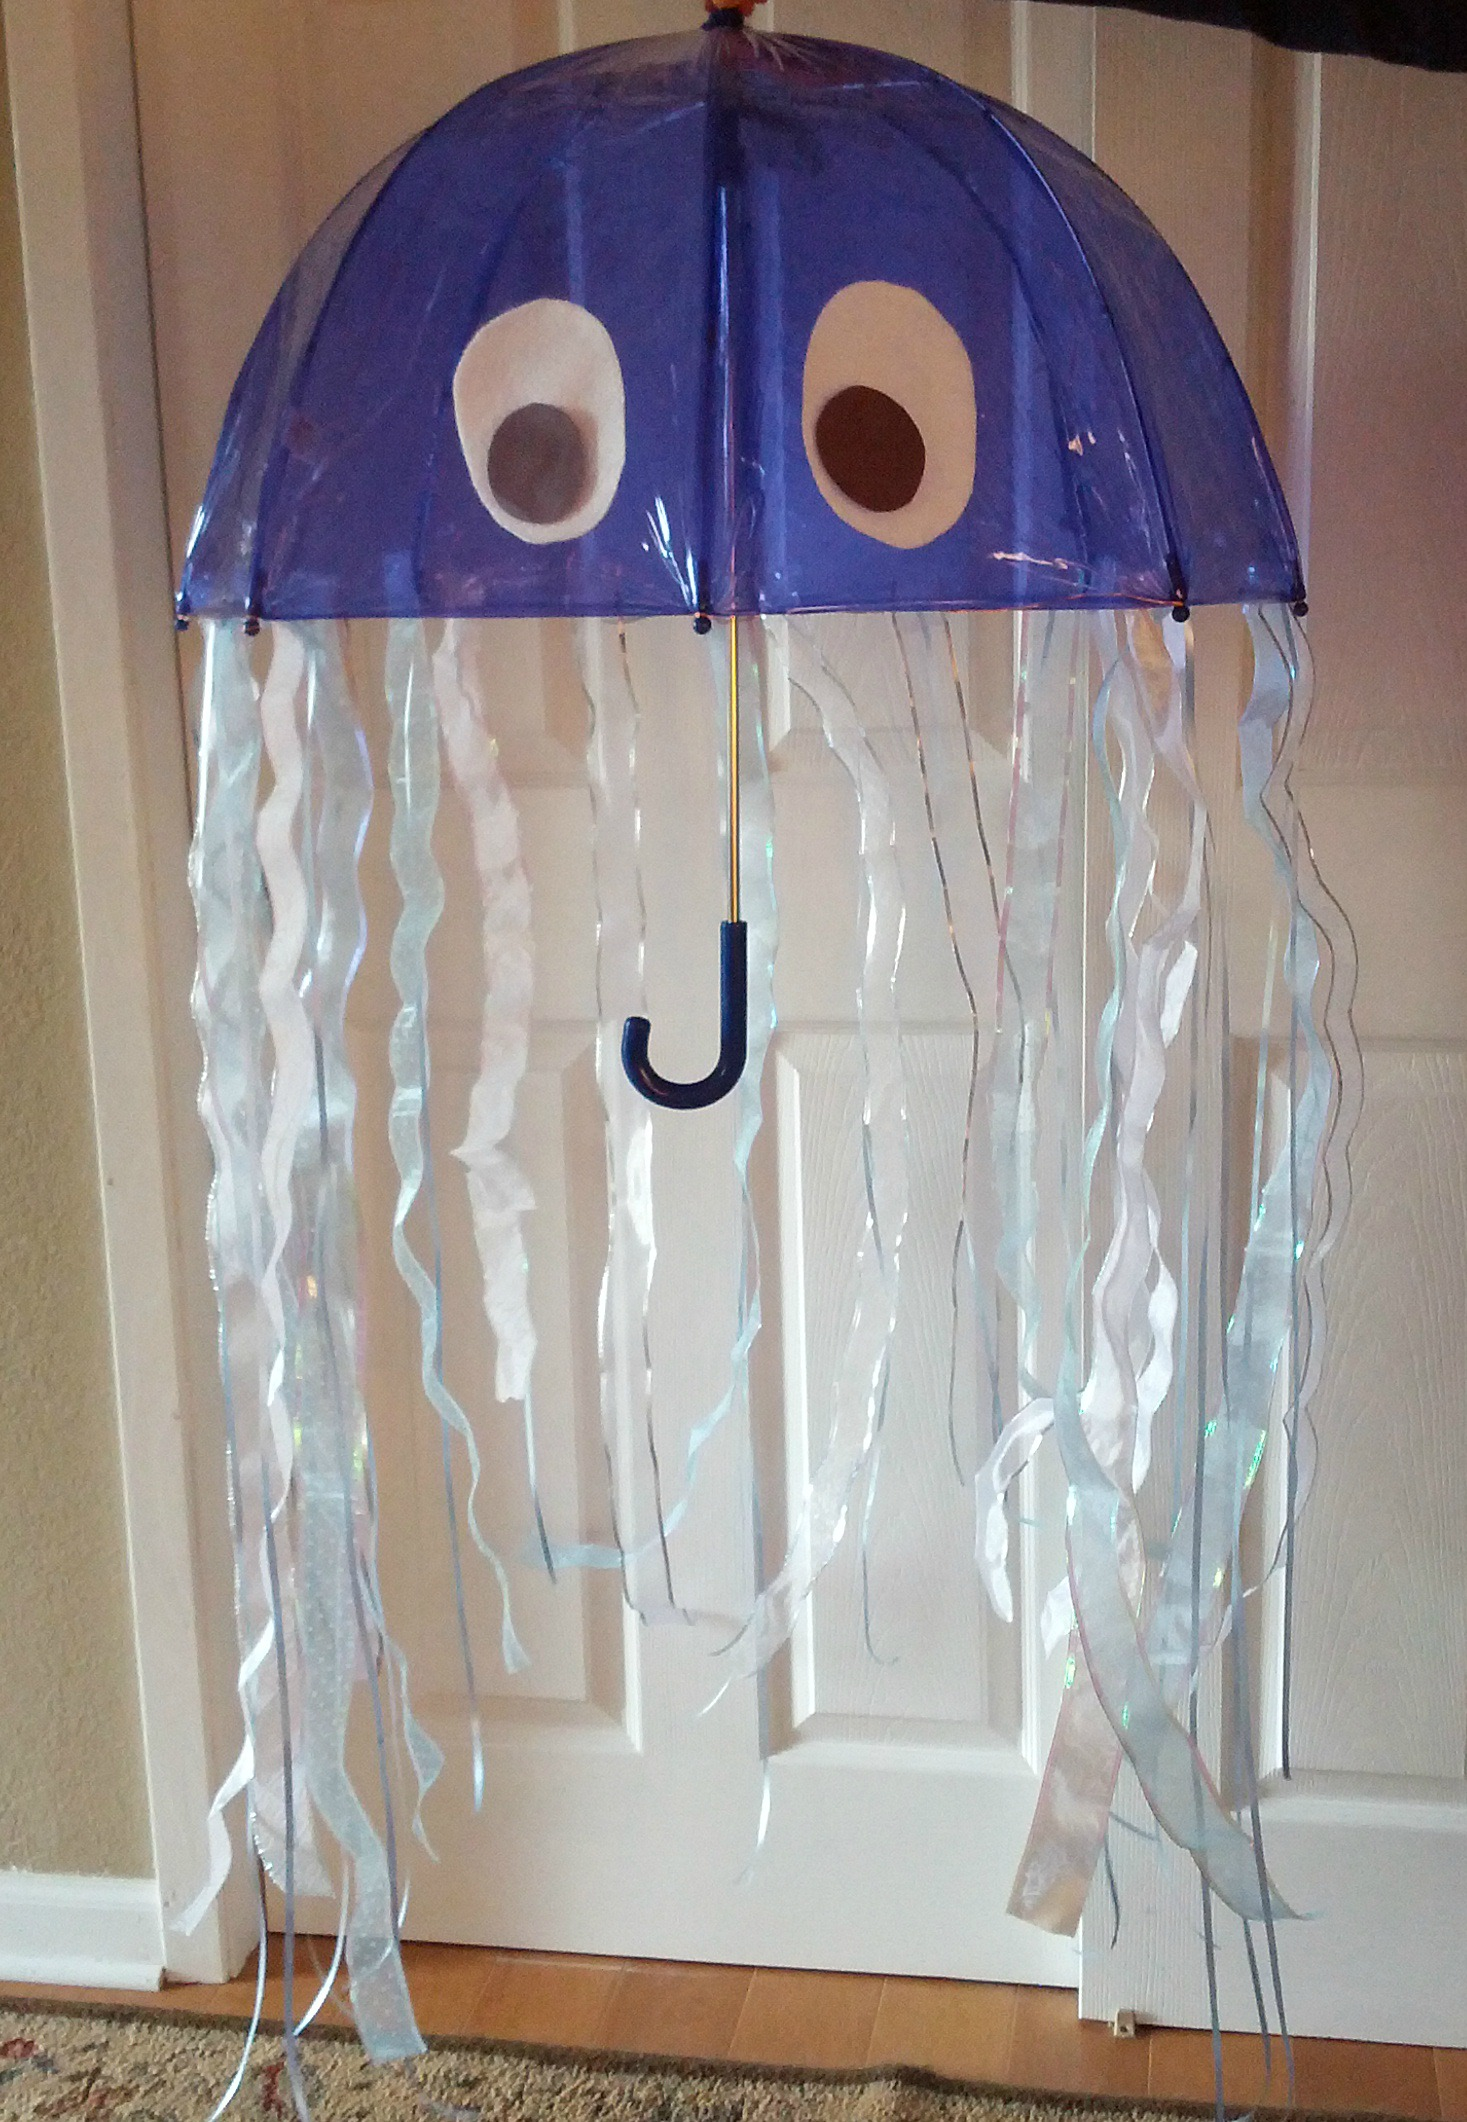 Amazing diy jellyfish costume almost the real thing jellyfish costume1 jellyfish costume2 solutioingenieria Gallery